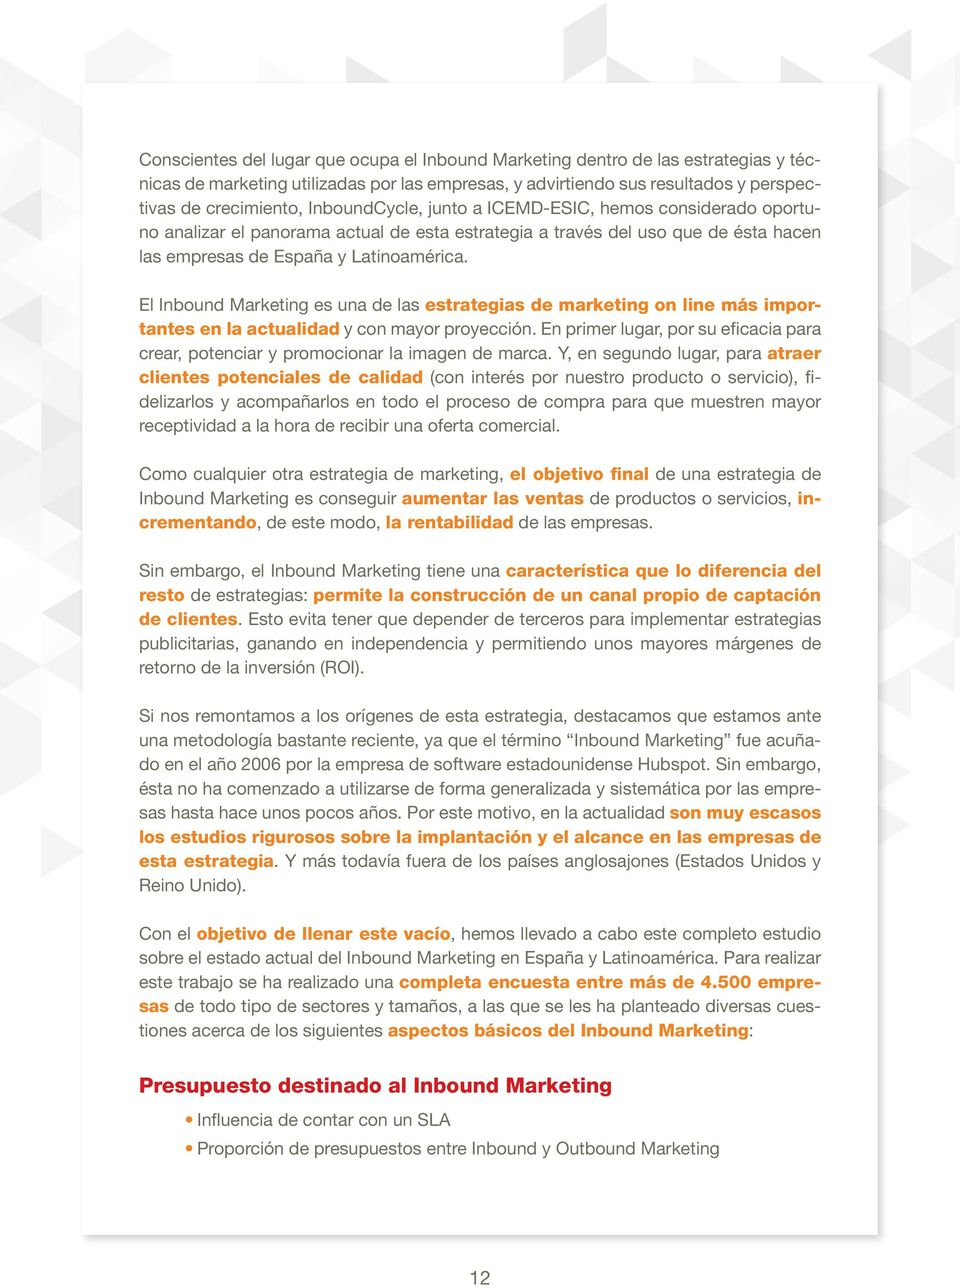 El Inbound Marketing es una de las estrategias de marketing on line más importantes en la actualidad y con mayor proyección.